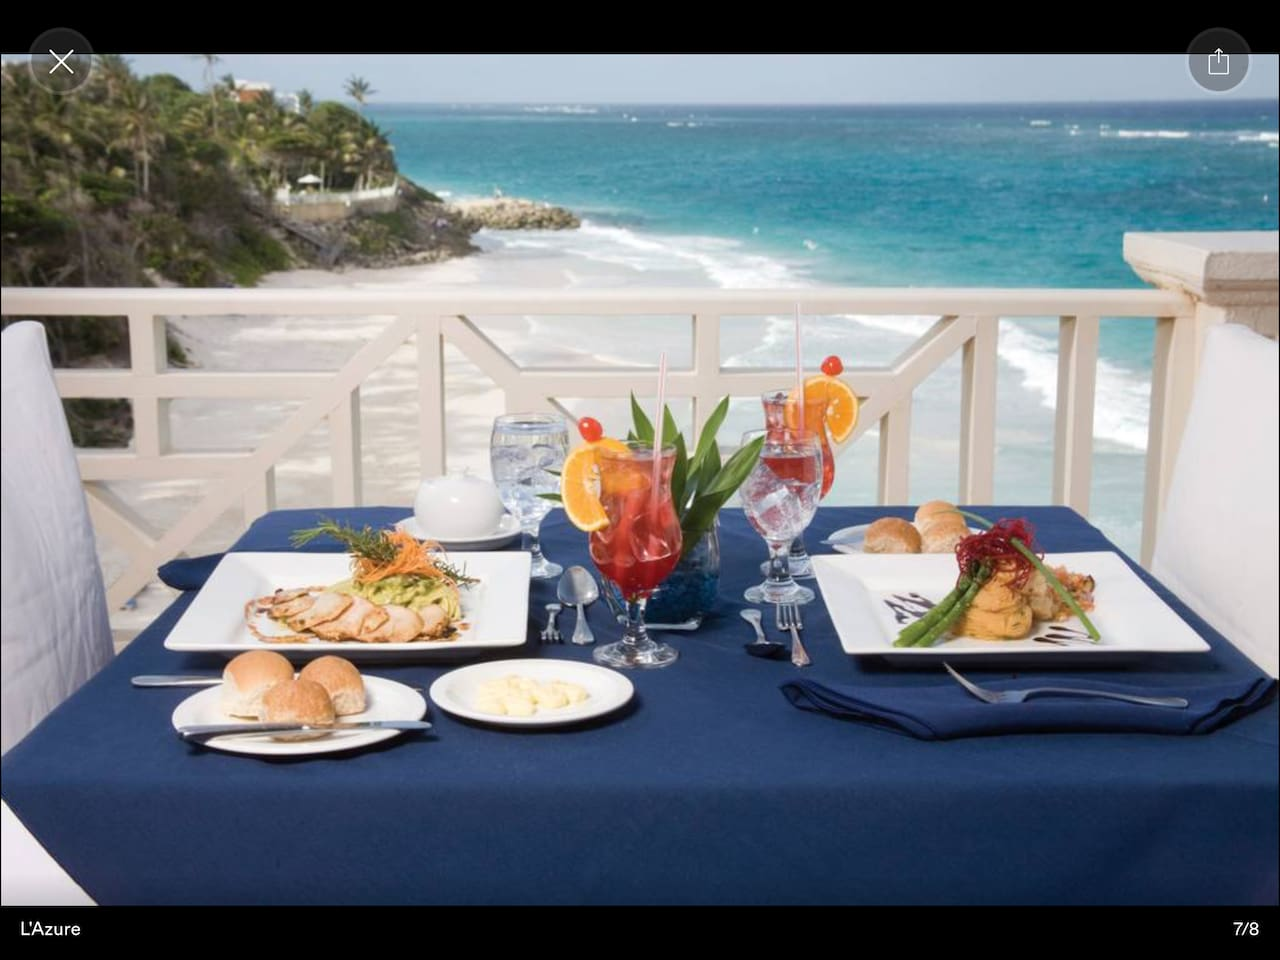 The world renowned Crane beach from L'Azure open for lunch and dinner.